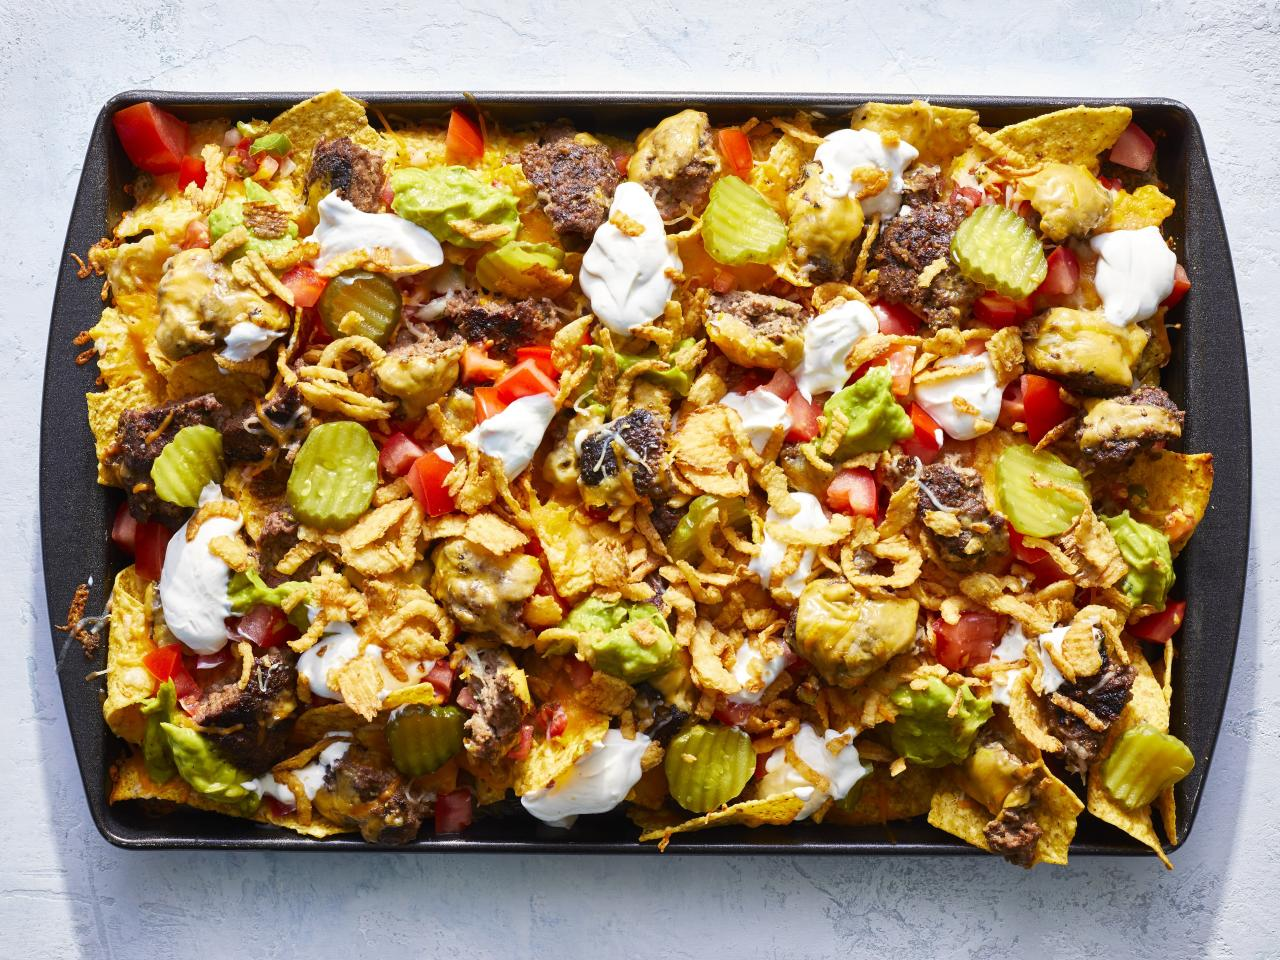 "<p>It was determined in our test kitchen that it is legitimately impossible to be anything other than happy while eating these cheeseburger nachos—do with that information what you will. The cookout-inspired food mashup is as perfect served as a fun, grilled snack for guests (especially during tailgating season) as it is an easy, throw-together meal to use up leftovers from a weekend get-together. So while the cheeseburger recipe provided here does produce an extremely moist and flavorful patty, you can certainly use leftover cooked burgers if you already have them on hand. Same idea applies to the nacho toppings; we went with a blend of typical Tex-mex toppers and backyard cookout accouterments, but you can vary things up however suits you. Your baking sheet will only be on the grill for a few minutes (just long enough for the cheese to melt) so you shouldn't experience any issues with the pan warping or taking on grill marks. However, for easy clean-up, you can certainly go ahead and wrap your pan in aluminum foil. </p> <p><a href=""https://www.myrecipes.com/recipe/grilled-cheeseburger-nachos"">Grilled Cheeseburger Nachos Recipe</a></p>"